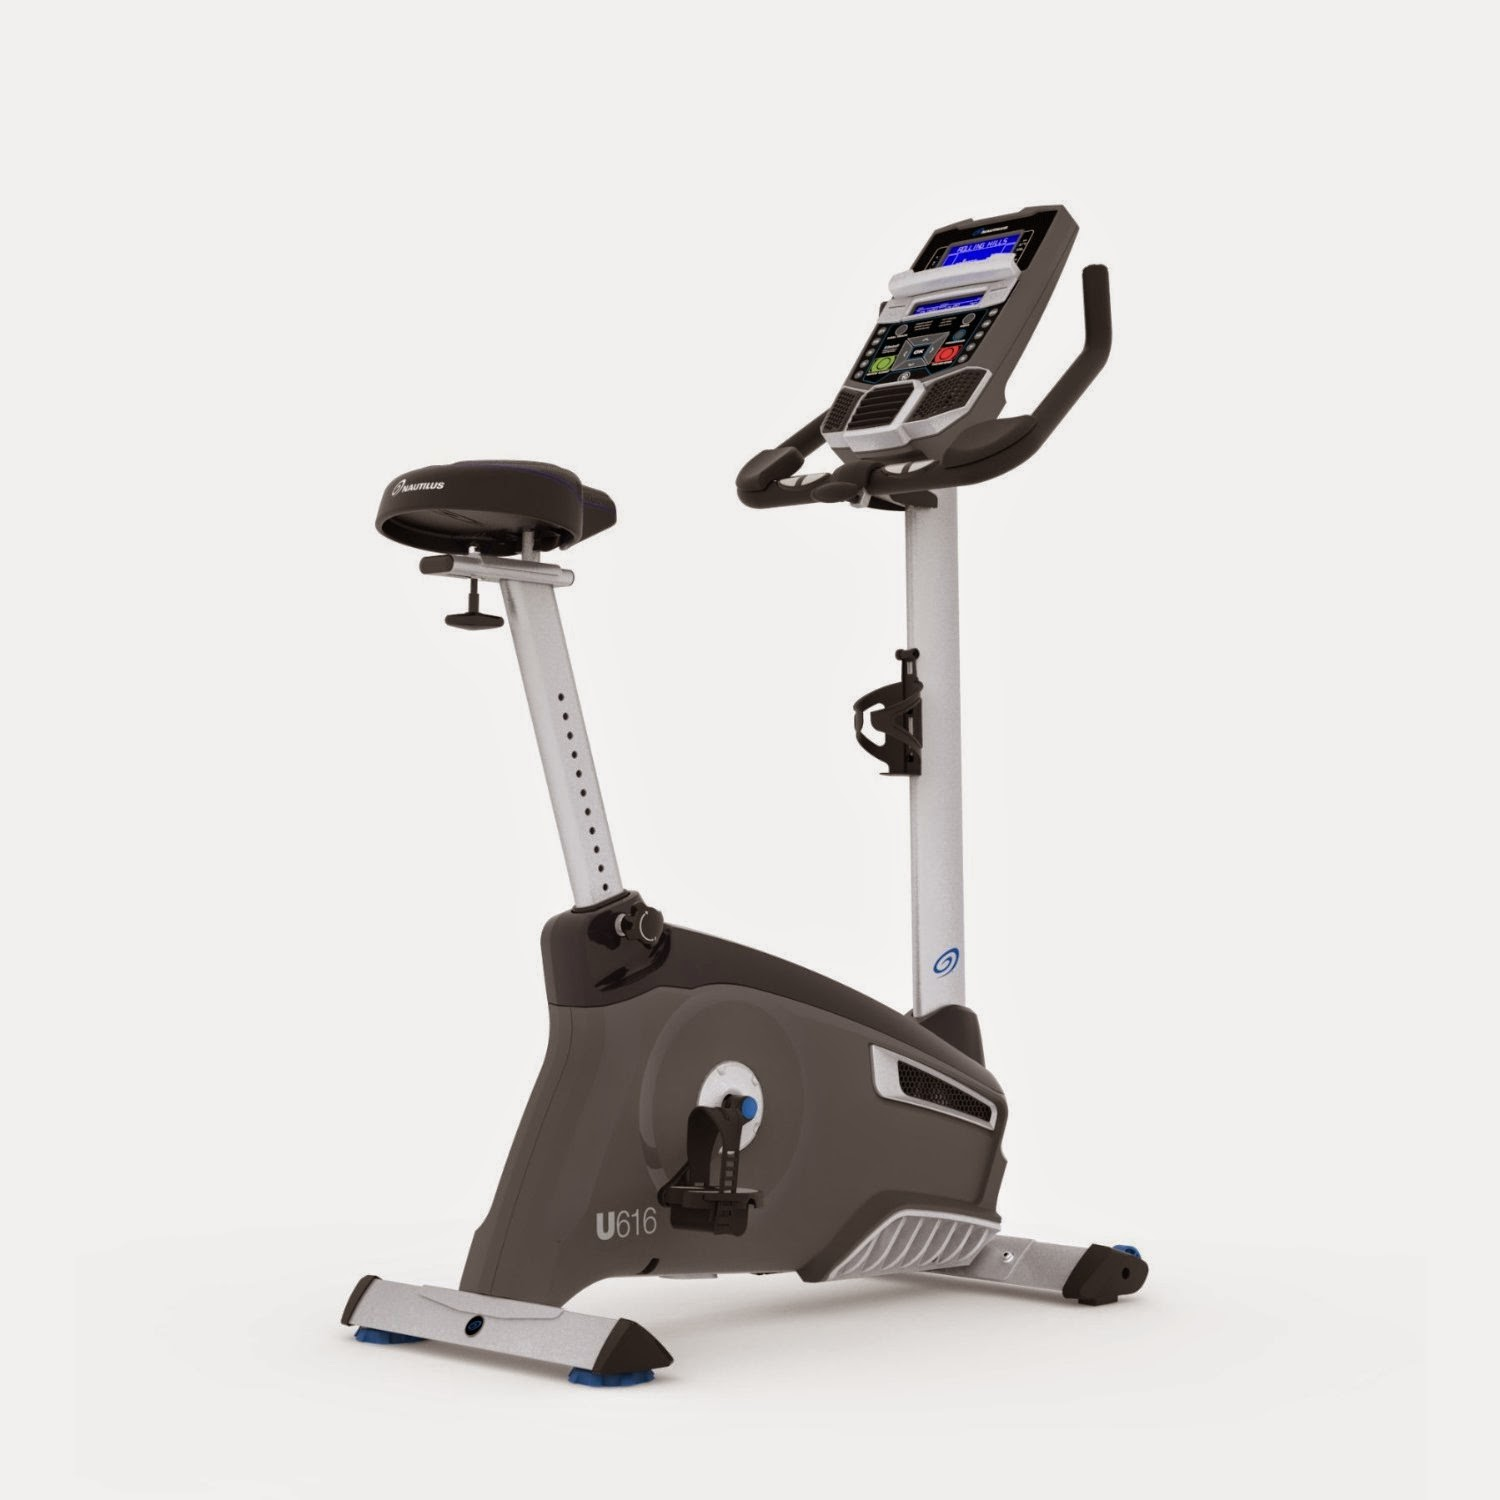 Nautilus U616 Upright Exercise Bike, features compared with Nautilus U614, more workout programs & resistance levels, plus Bluetooth LE connectivity, fore/aft adjustable seat, 4 user profiles